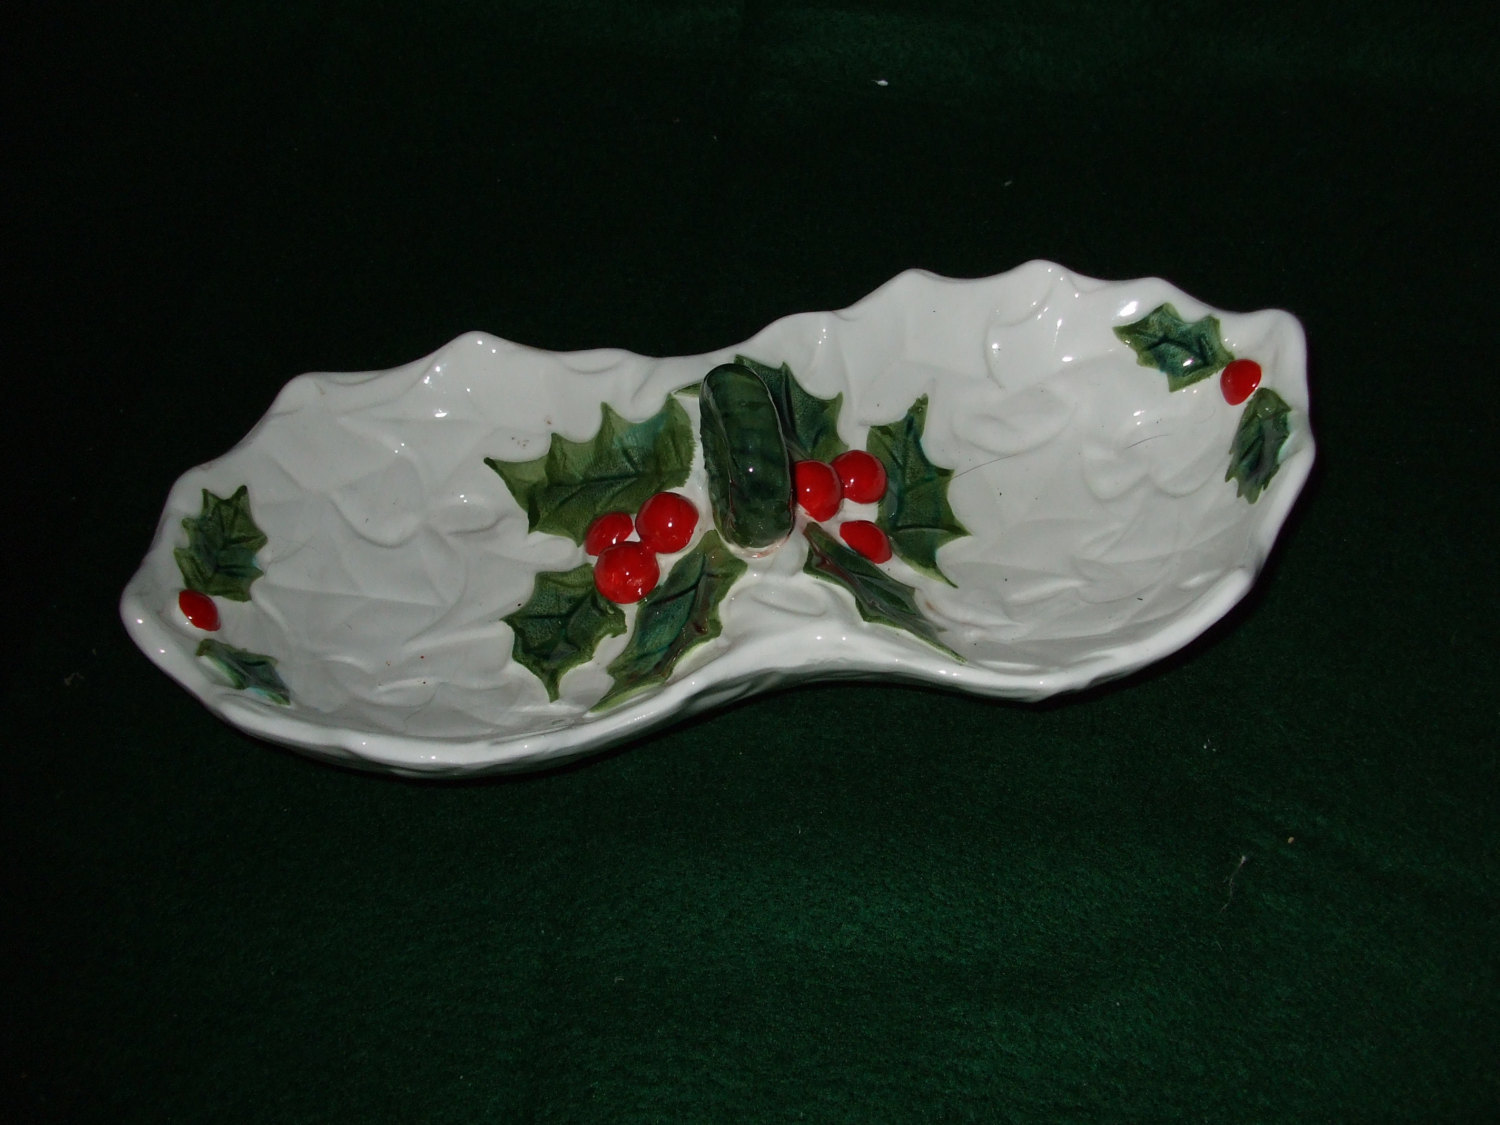 Lefton China White Holly Two Compartment Dish